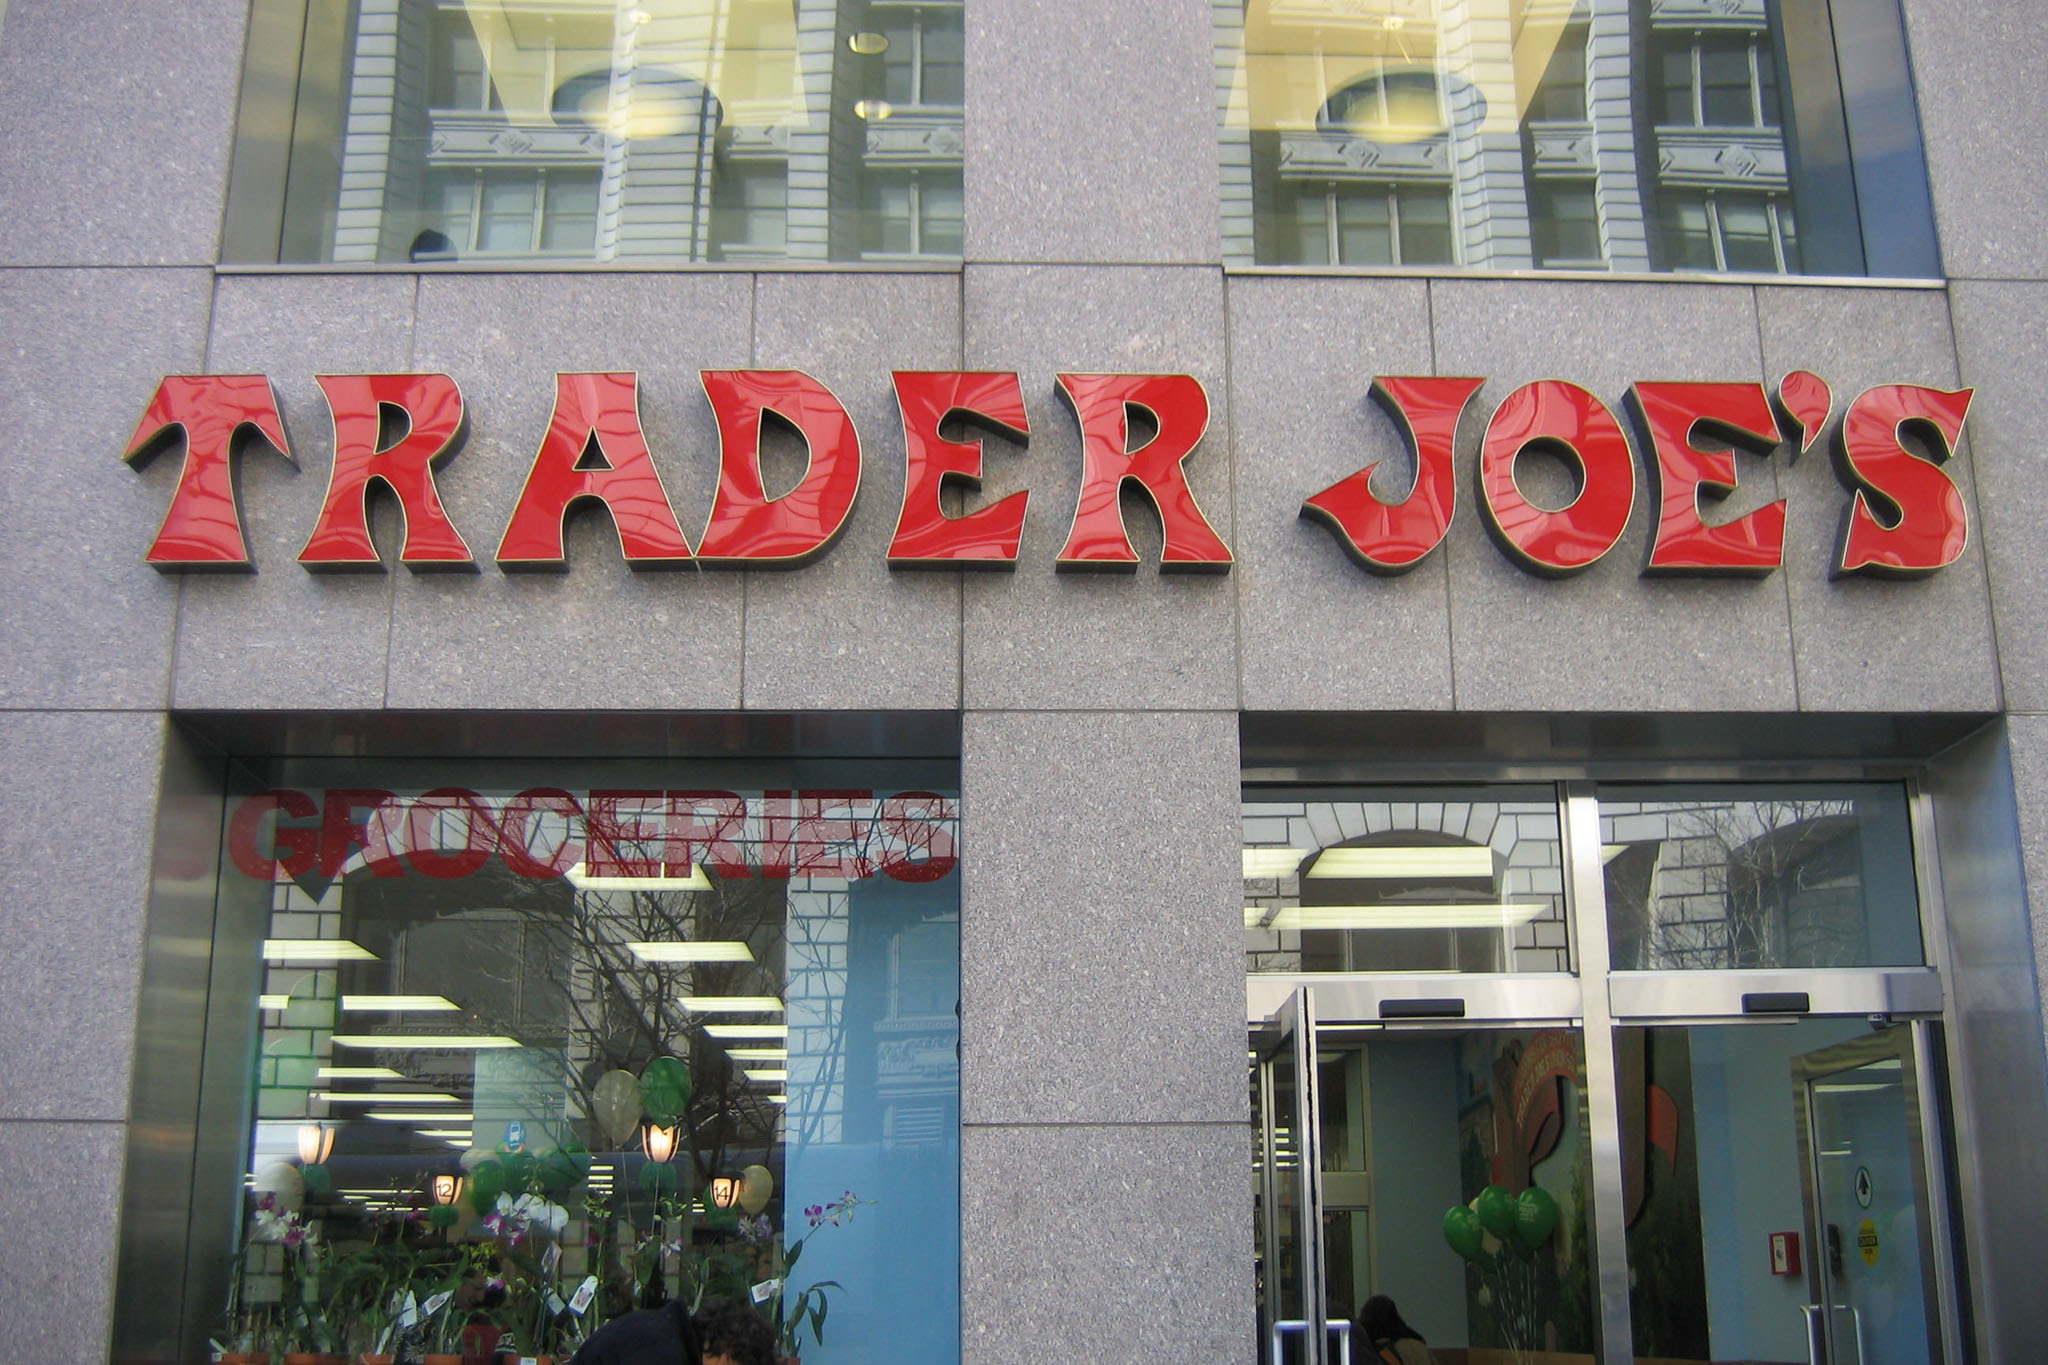 Brooklyn is getting a new Trader Joe's on Friday